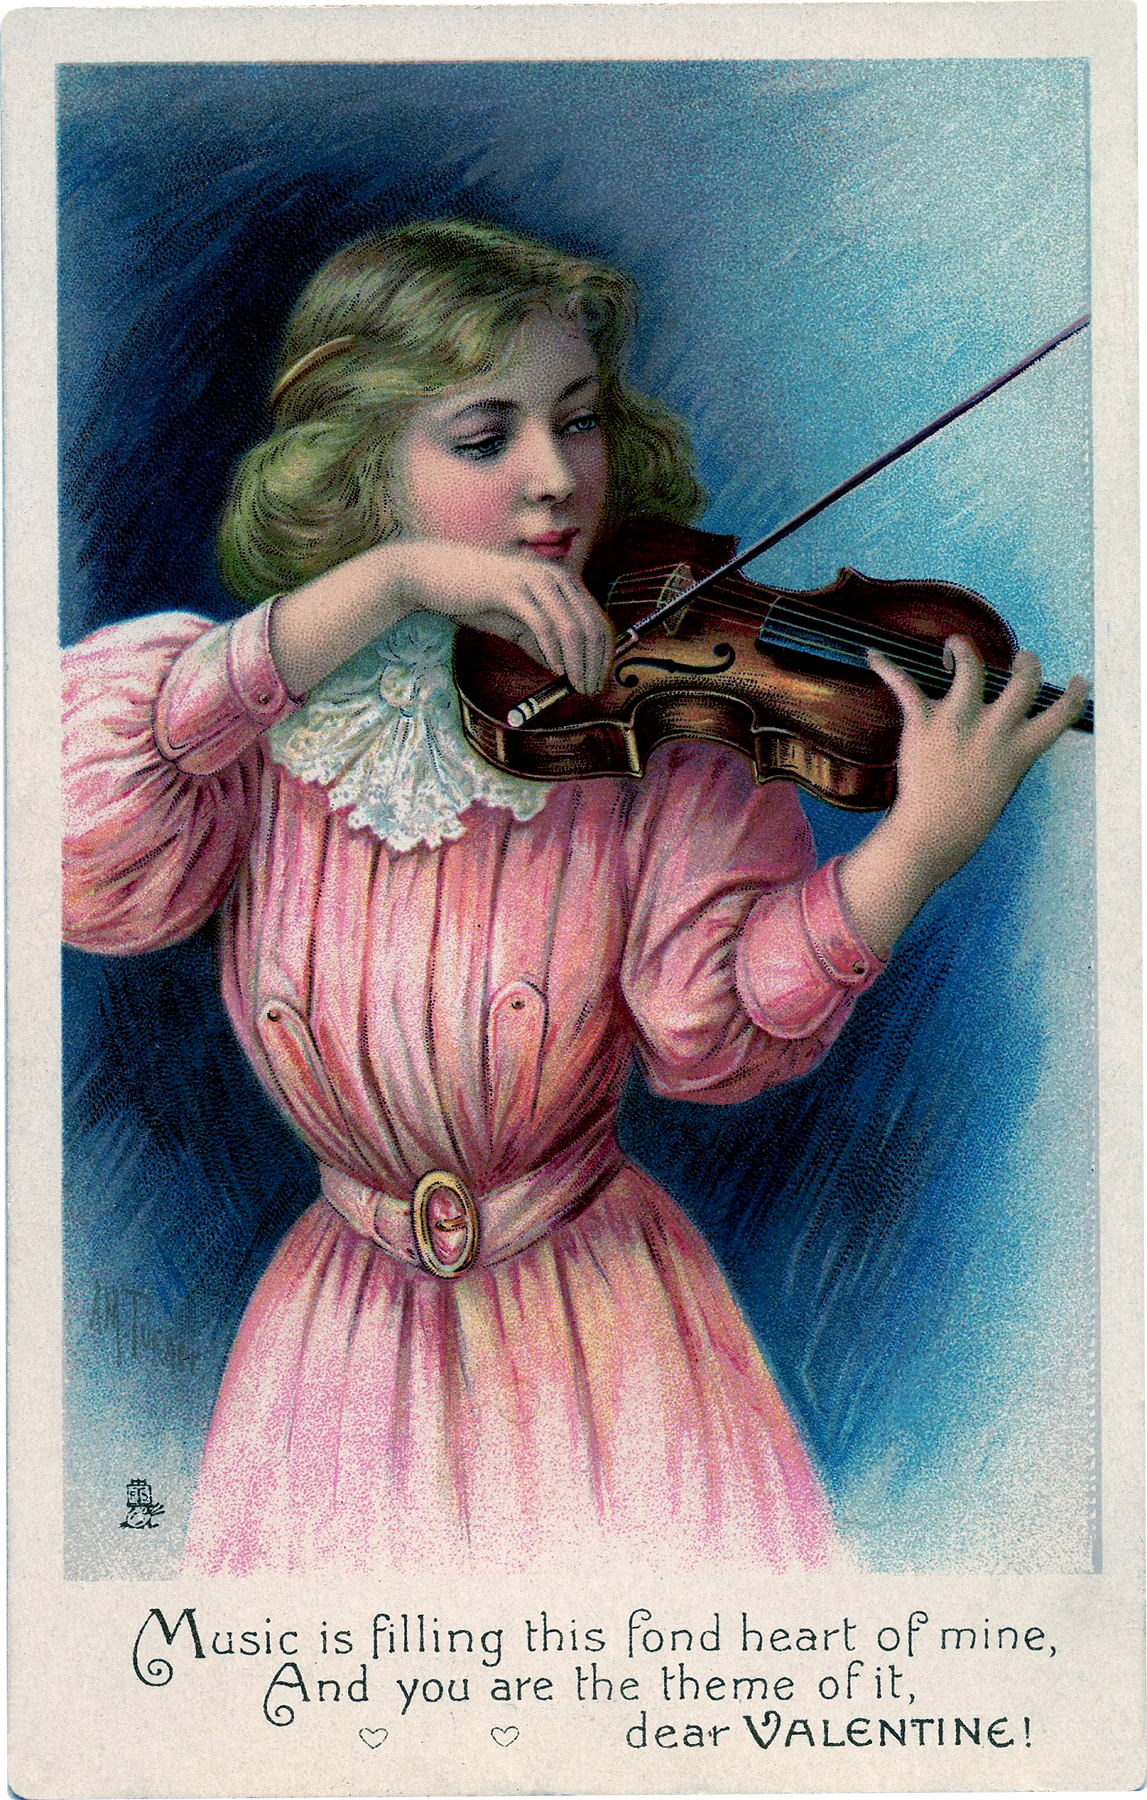 Lovely Violin Girl Image